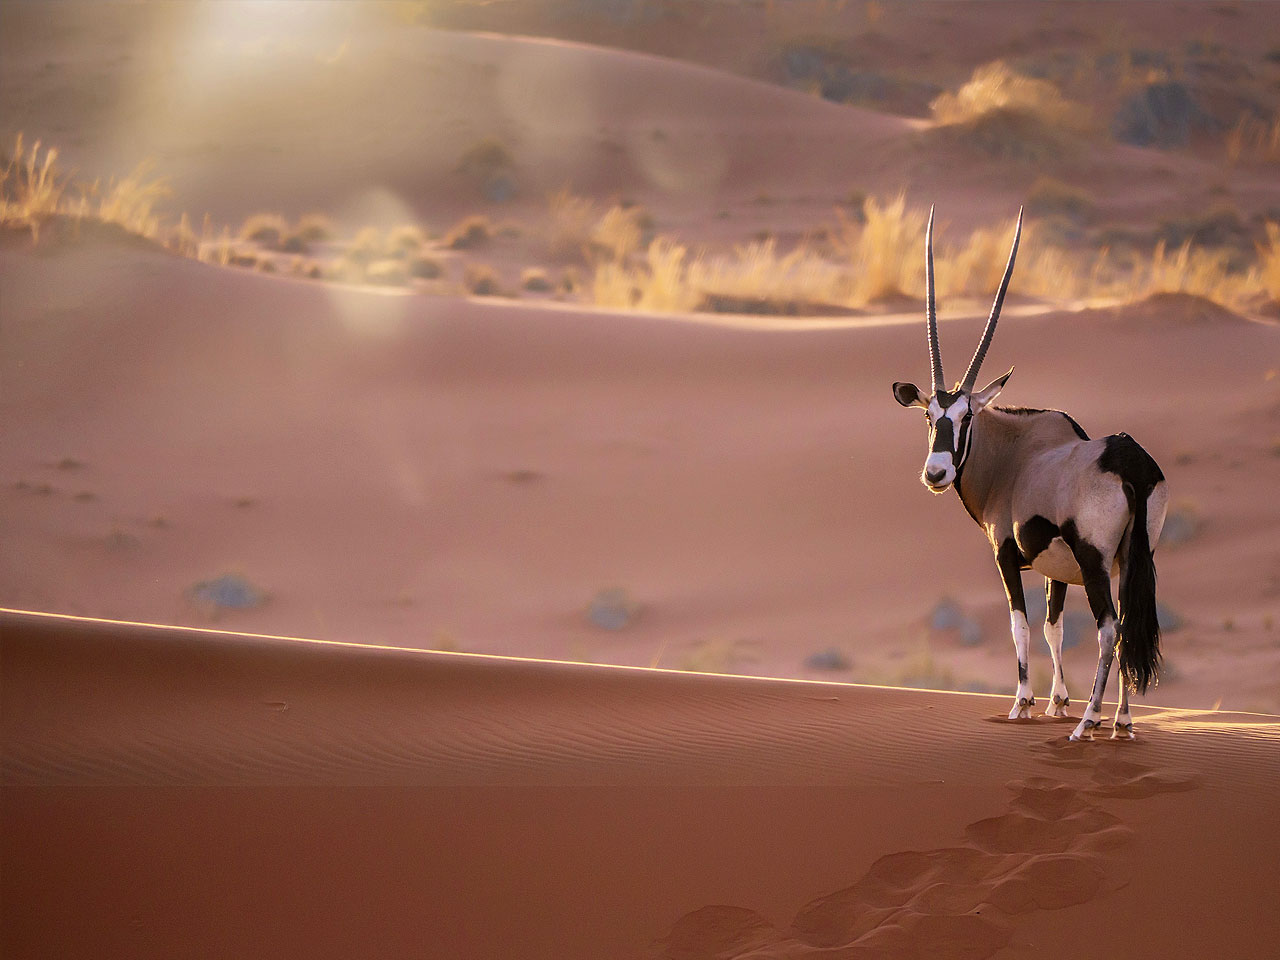 A lon oryx standing on a red sand dune in the light at sunrise.